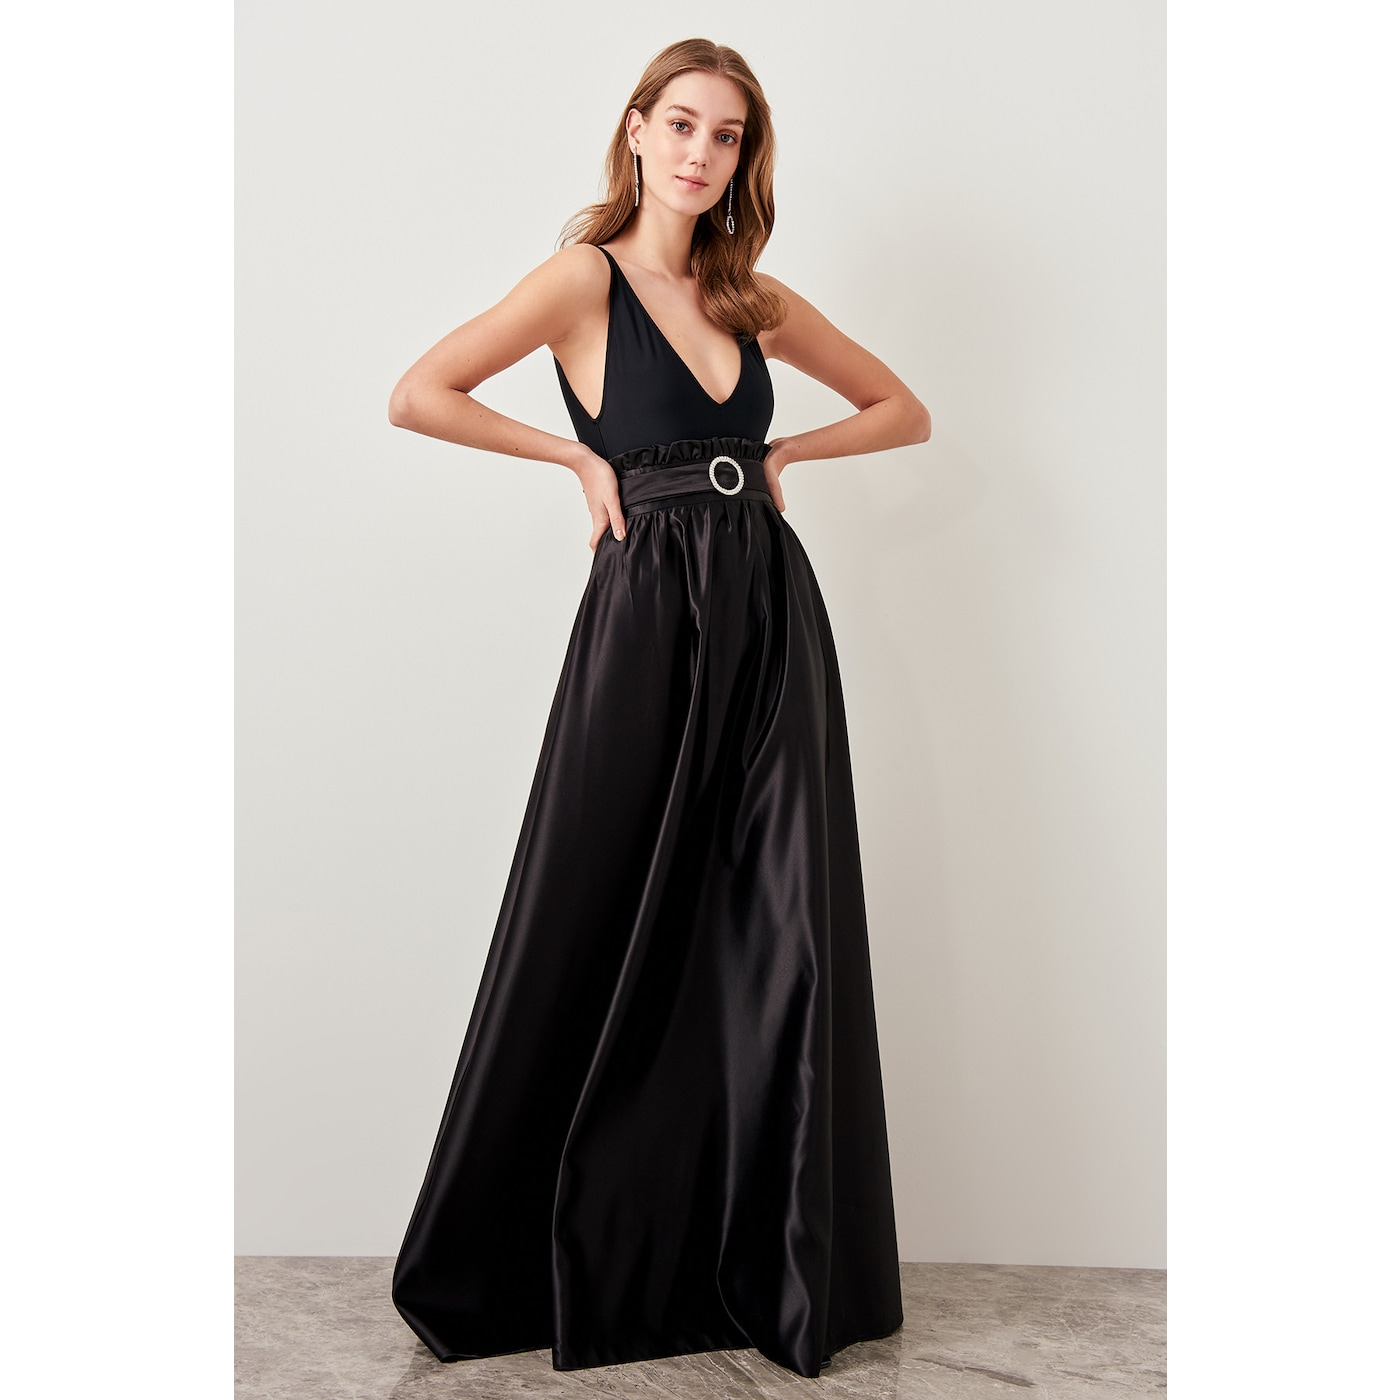 Trendyol Black Belted High Waist Skirt